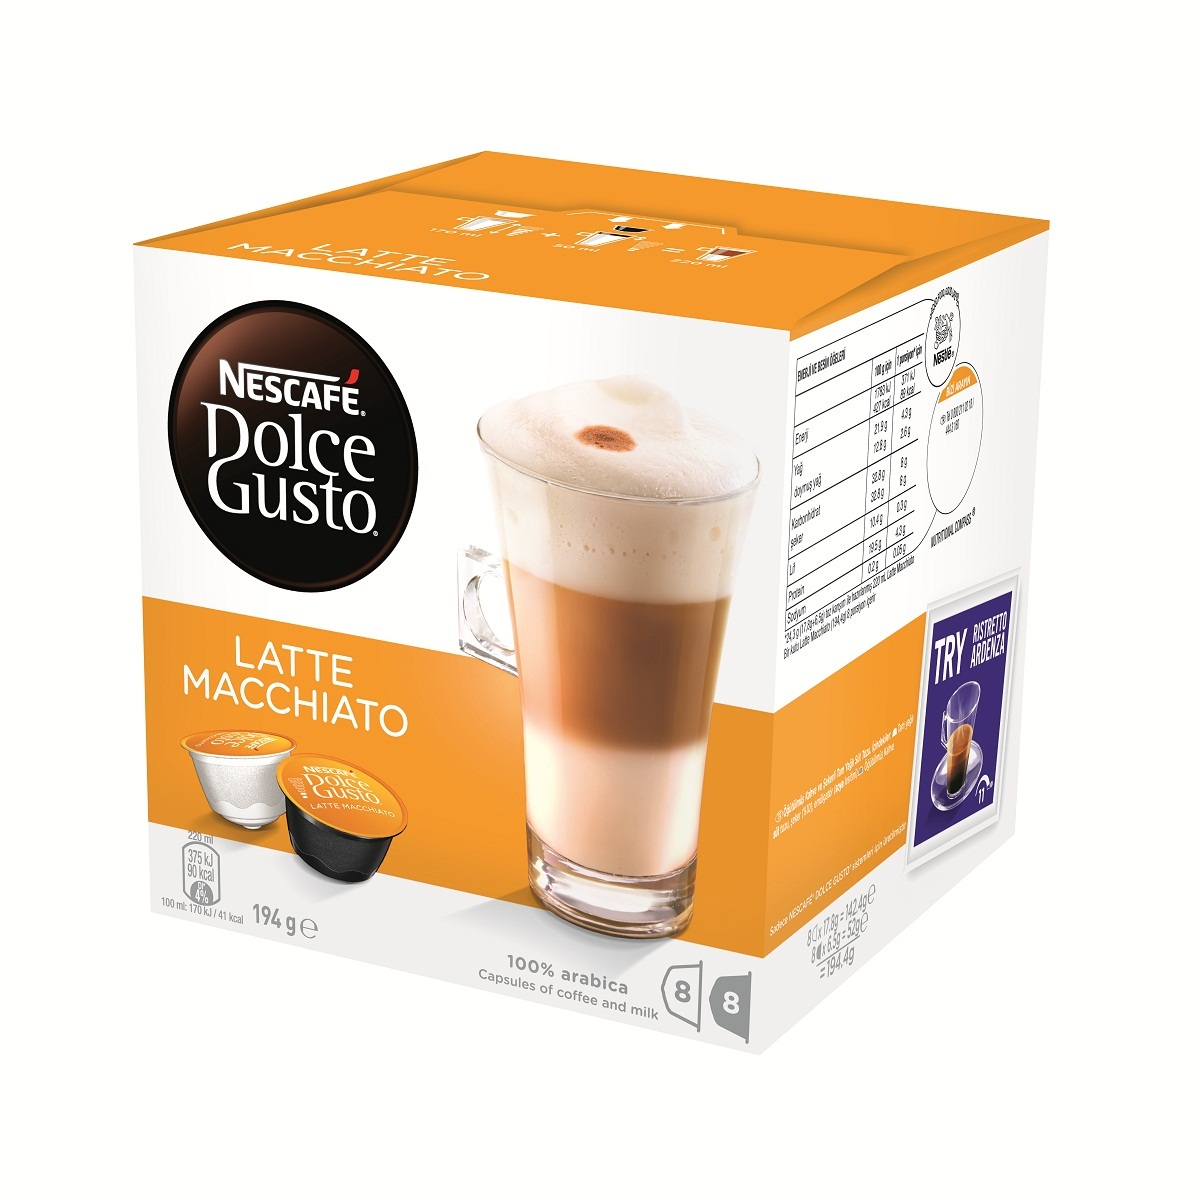 nescafe dolce gusto latte macchiato 8 coffee 8 milk pods capsules ebay. Black Bedroom Furniture Sets. Home Design Ideas